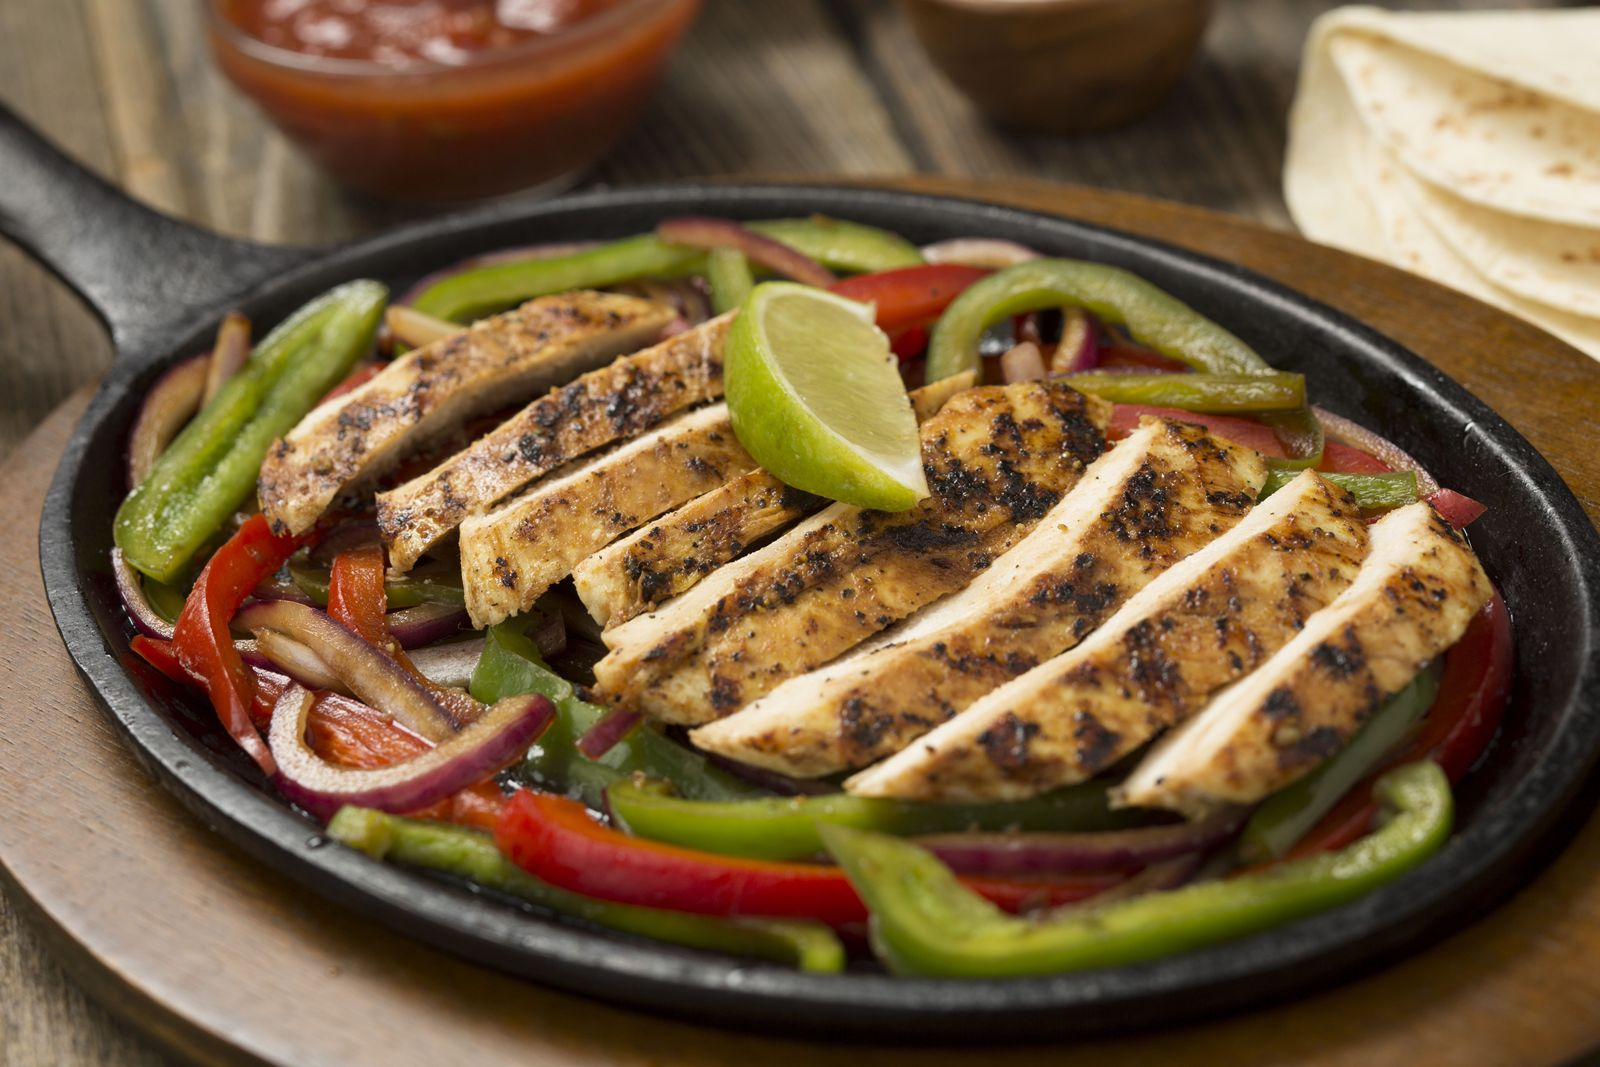 Get Your Fajita Fix at Houlihan's Restaurant + Bar for Only $10 on National Fajita Day